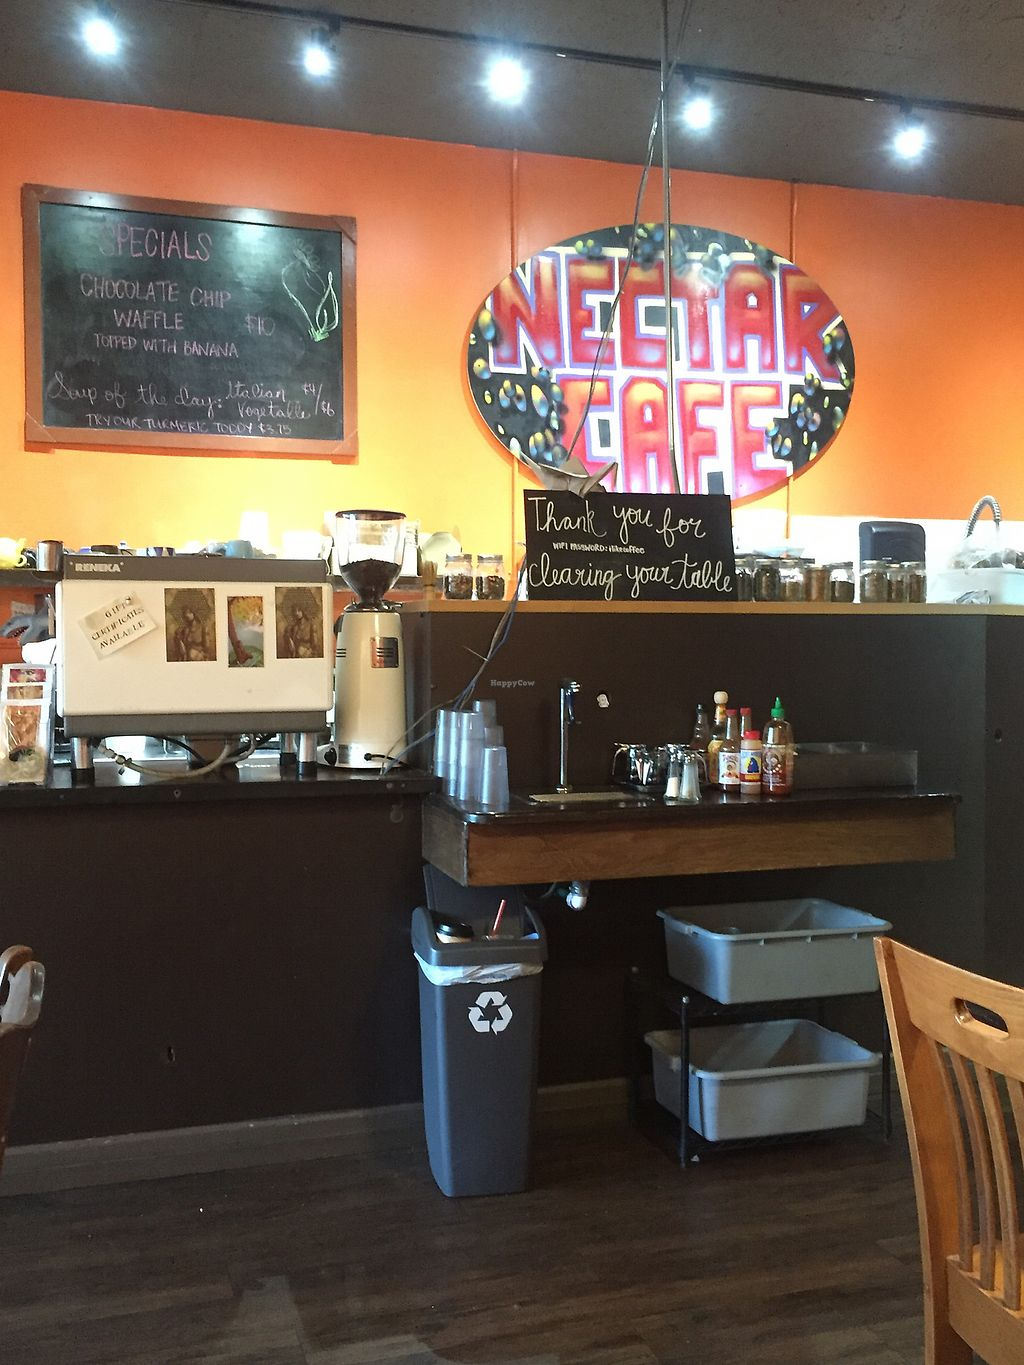 "Photo of Nectar Cafe  by <a href=""/members/profile/happycowgirl"">happycowgirl</a> <br/>Order at the counter <br/> December 31, 2017  - <a href='/contact/abuse/image/43466/341120'>Report</a>"